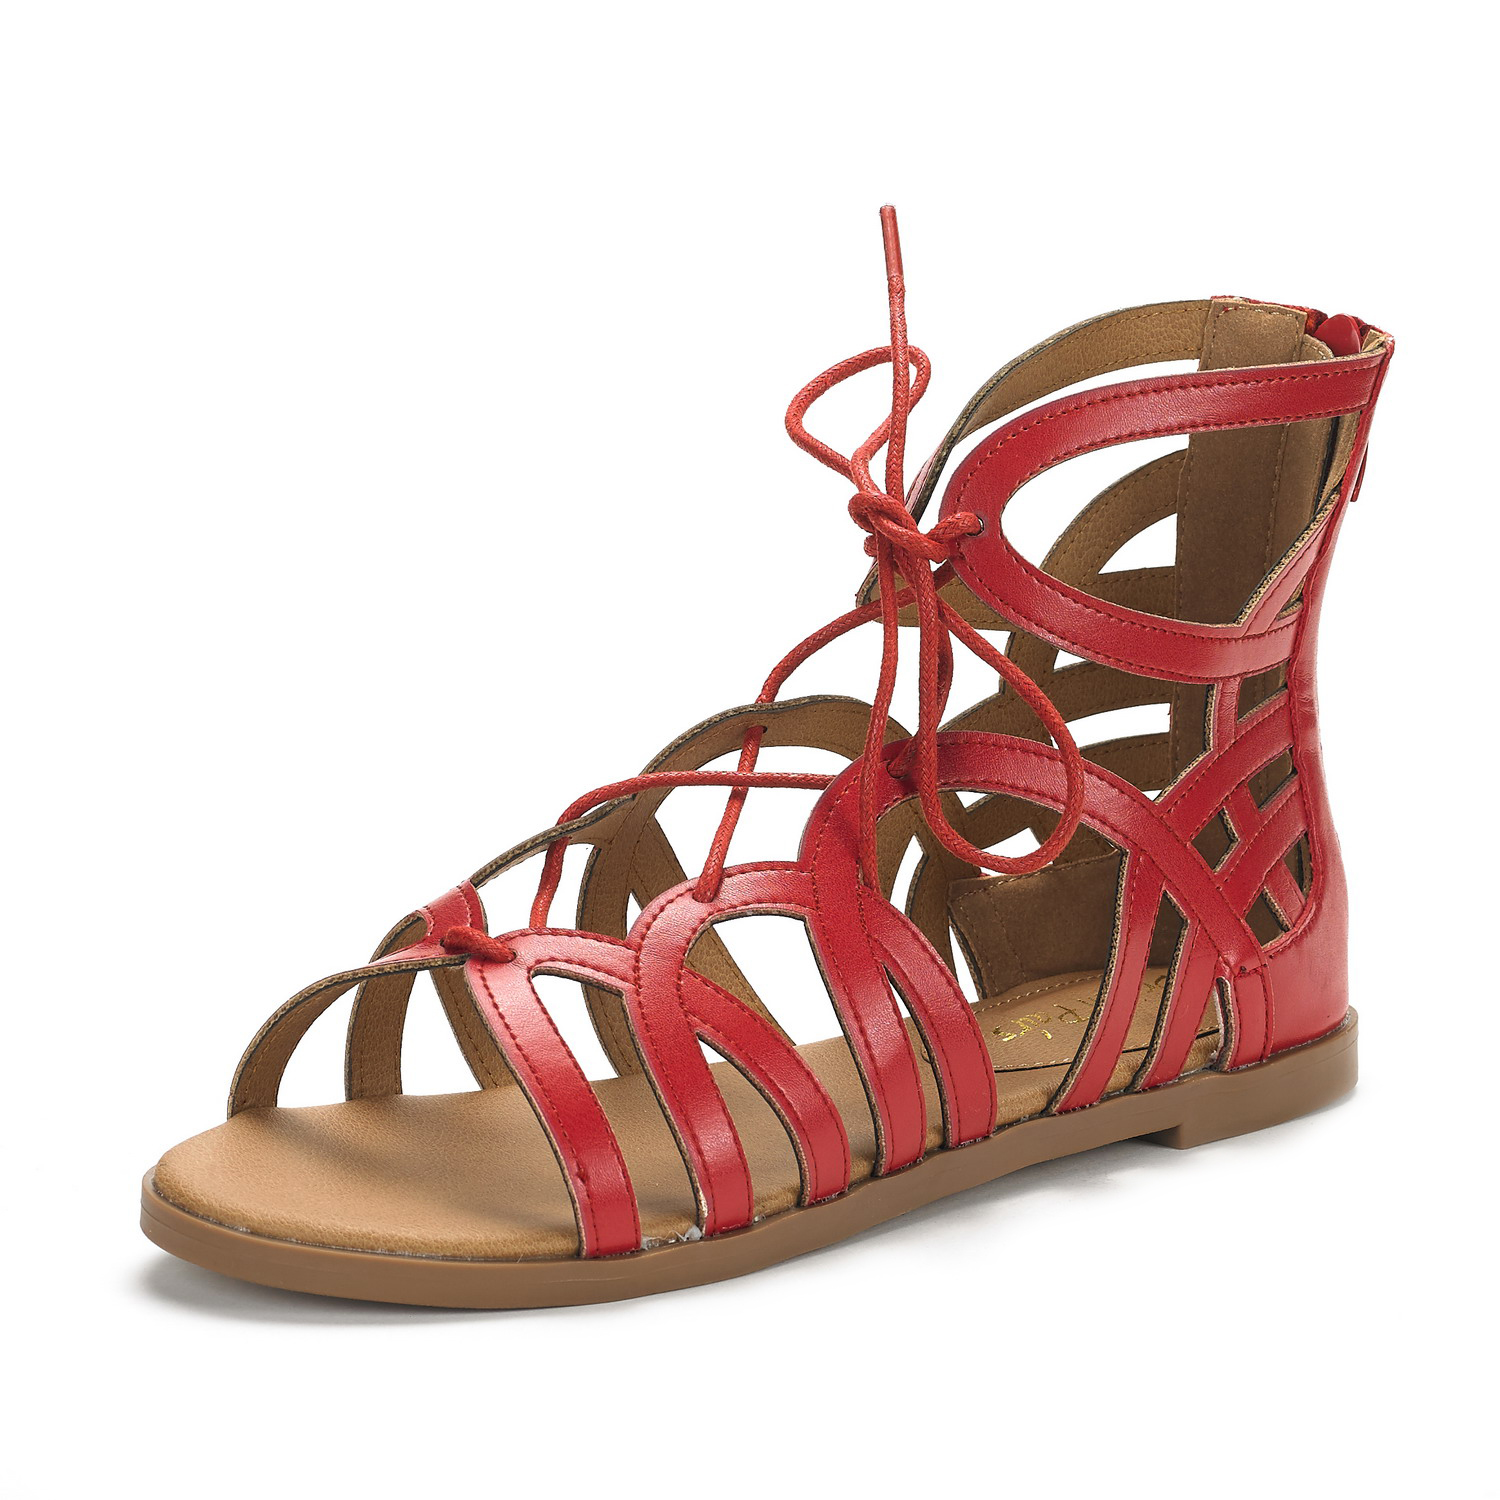 DREAM-PAIRS-CESAR-New-Women-Cutout-Open-Toe-Ankle-Strap-Gladiator-Flat-Sandals